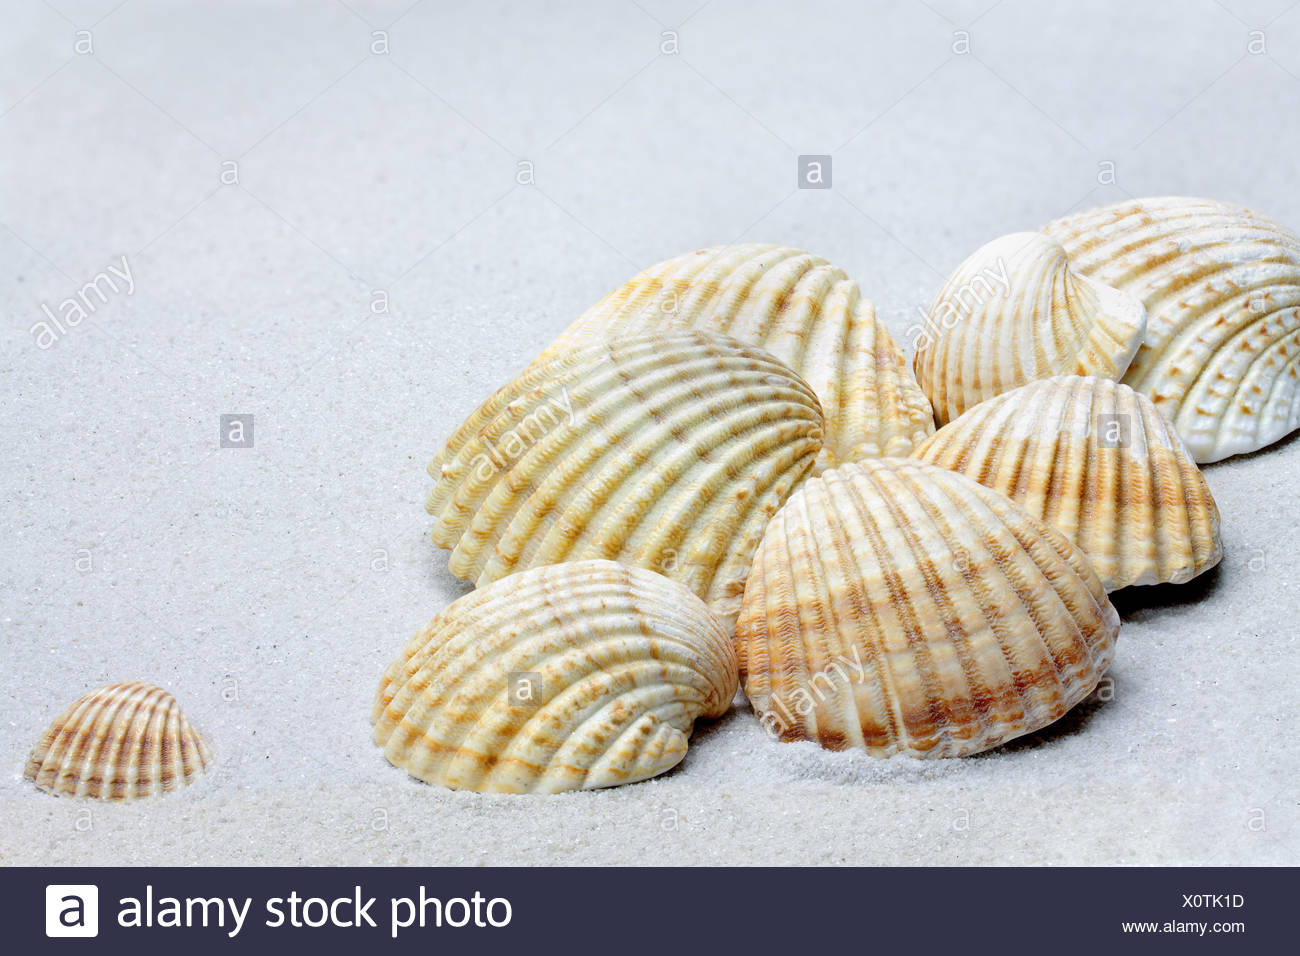 shells exempted - Stock Image